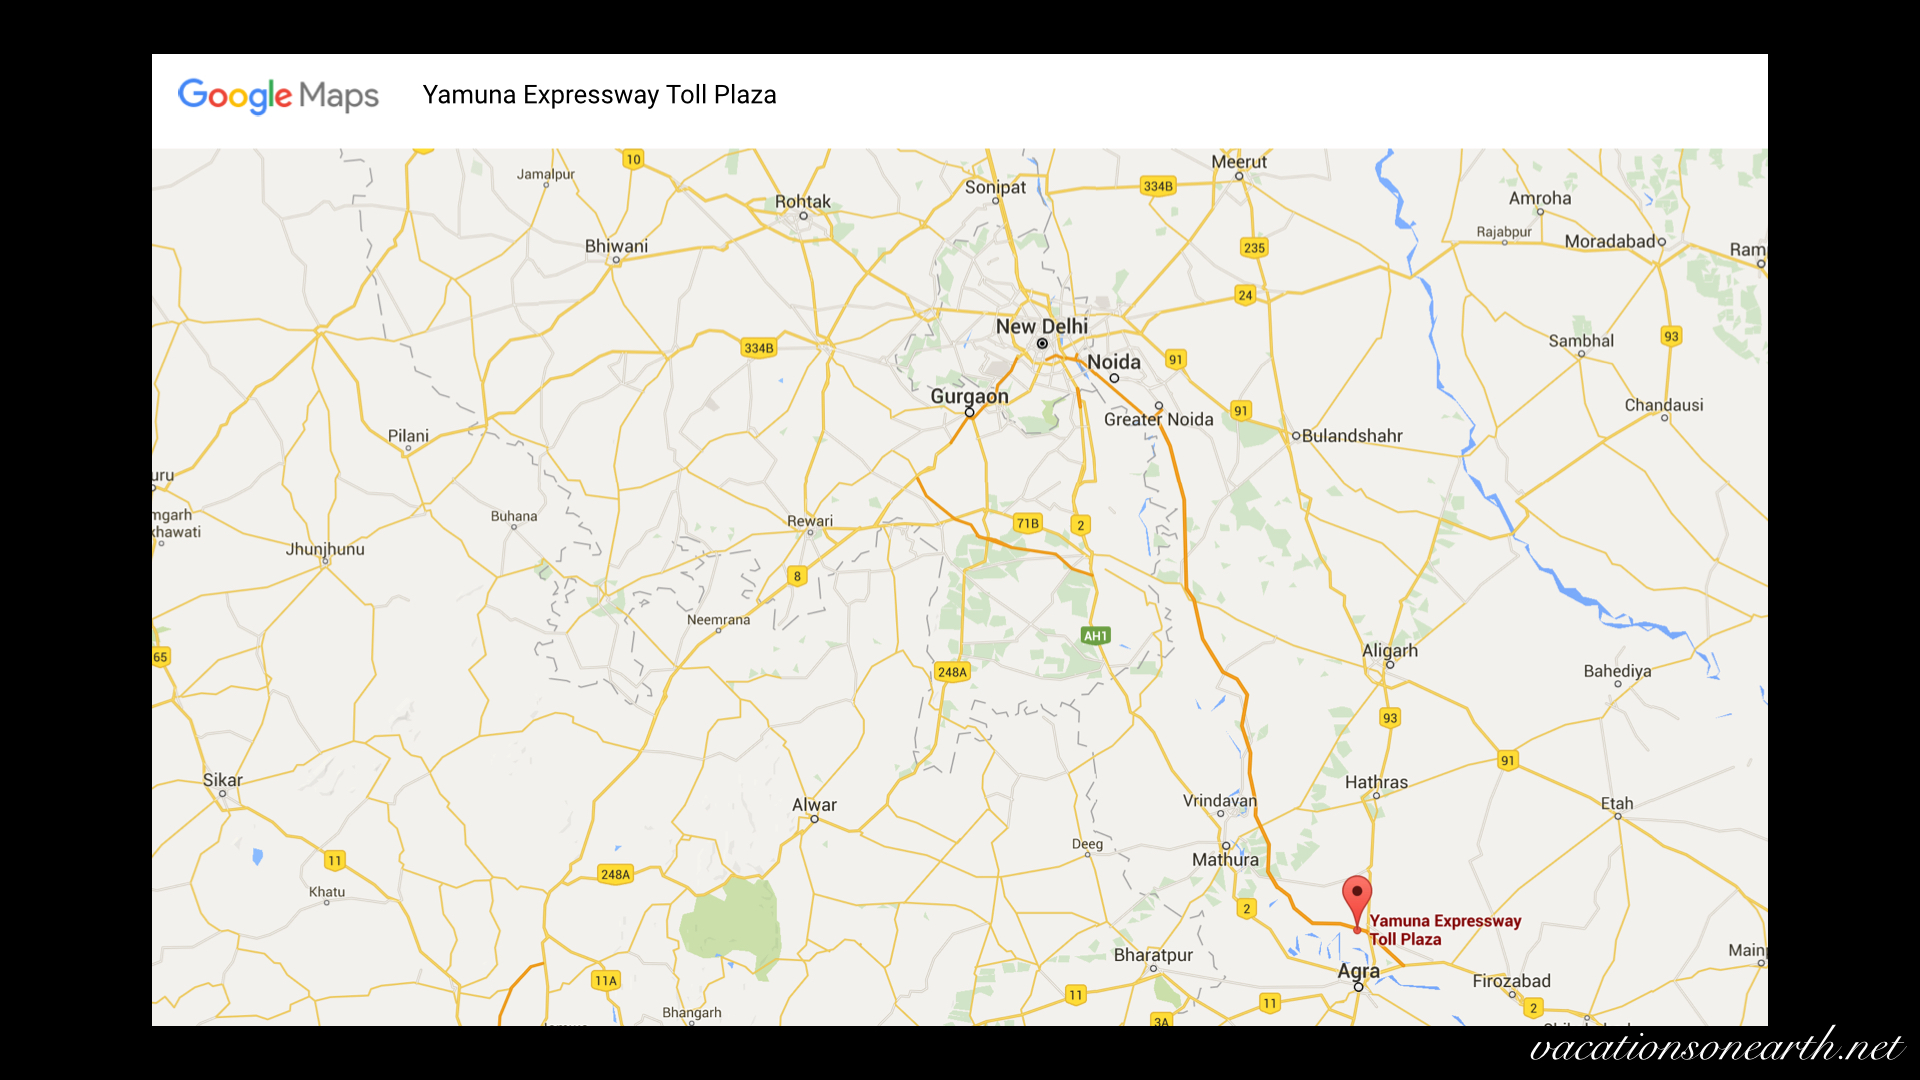 Map of Yamuna Expressway Toll Plaza route from New Delhi to Agra001